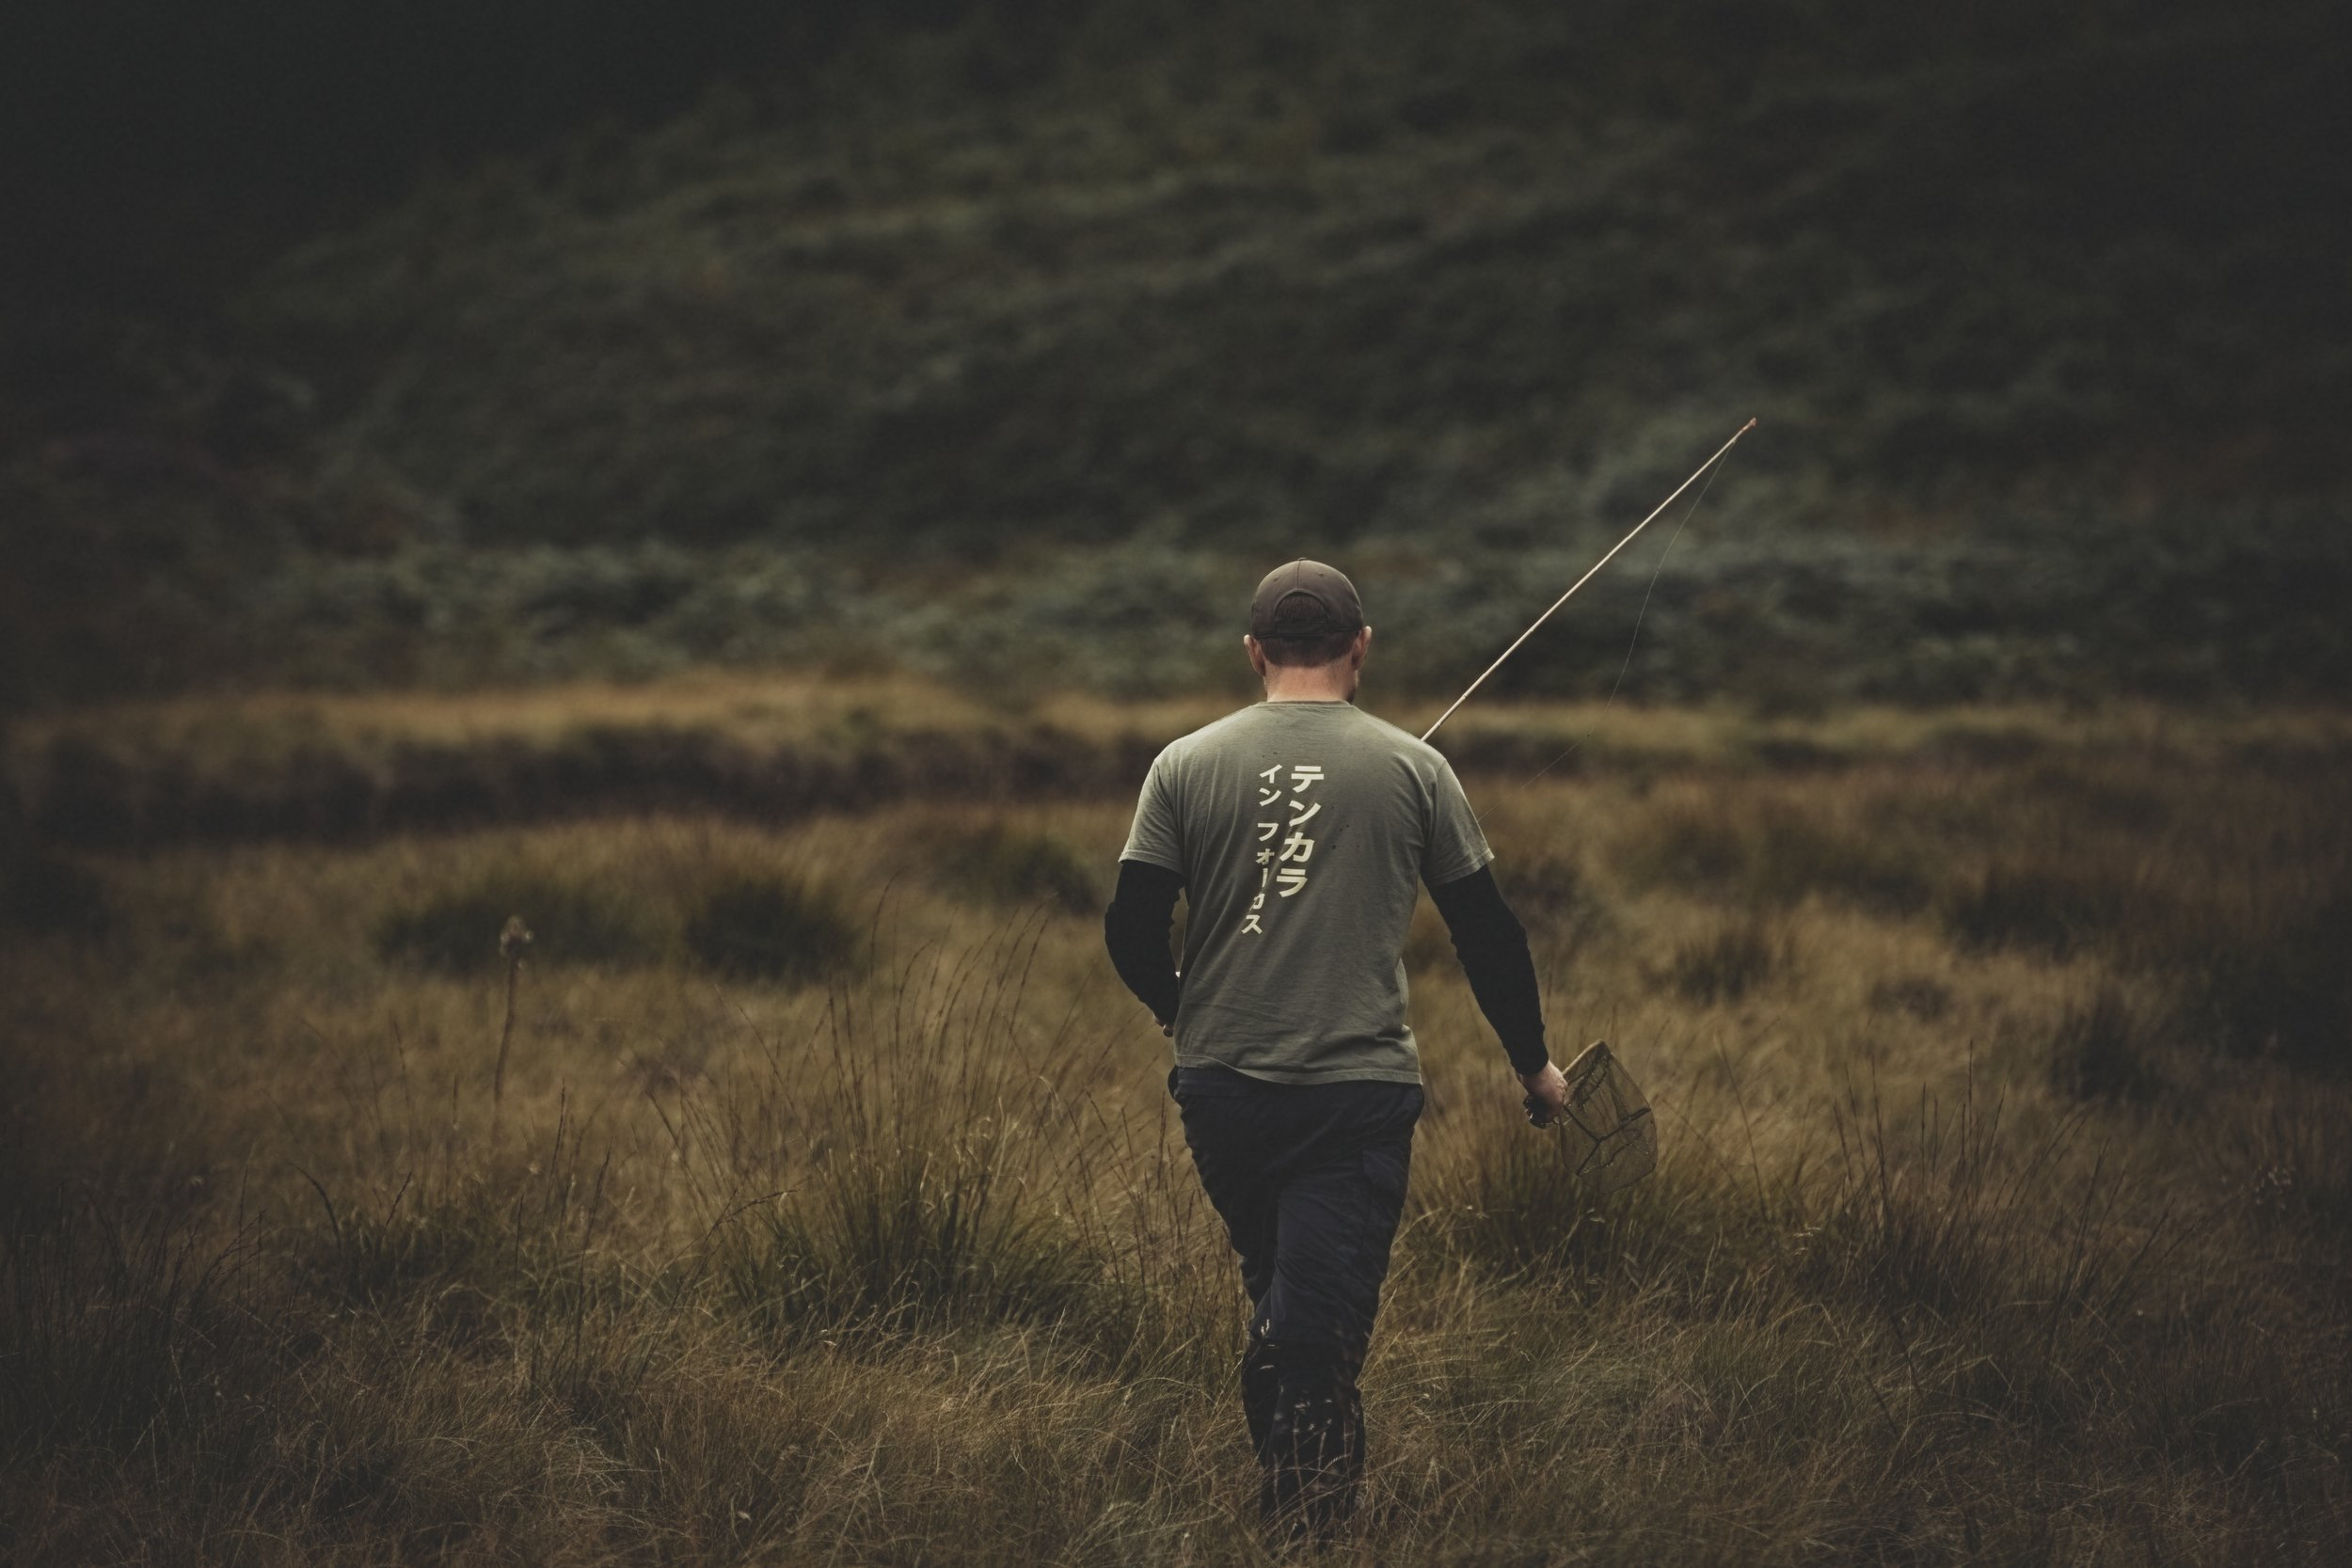 walking back to the car after a tenkara fly fishing trip